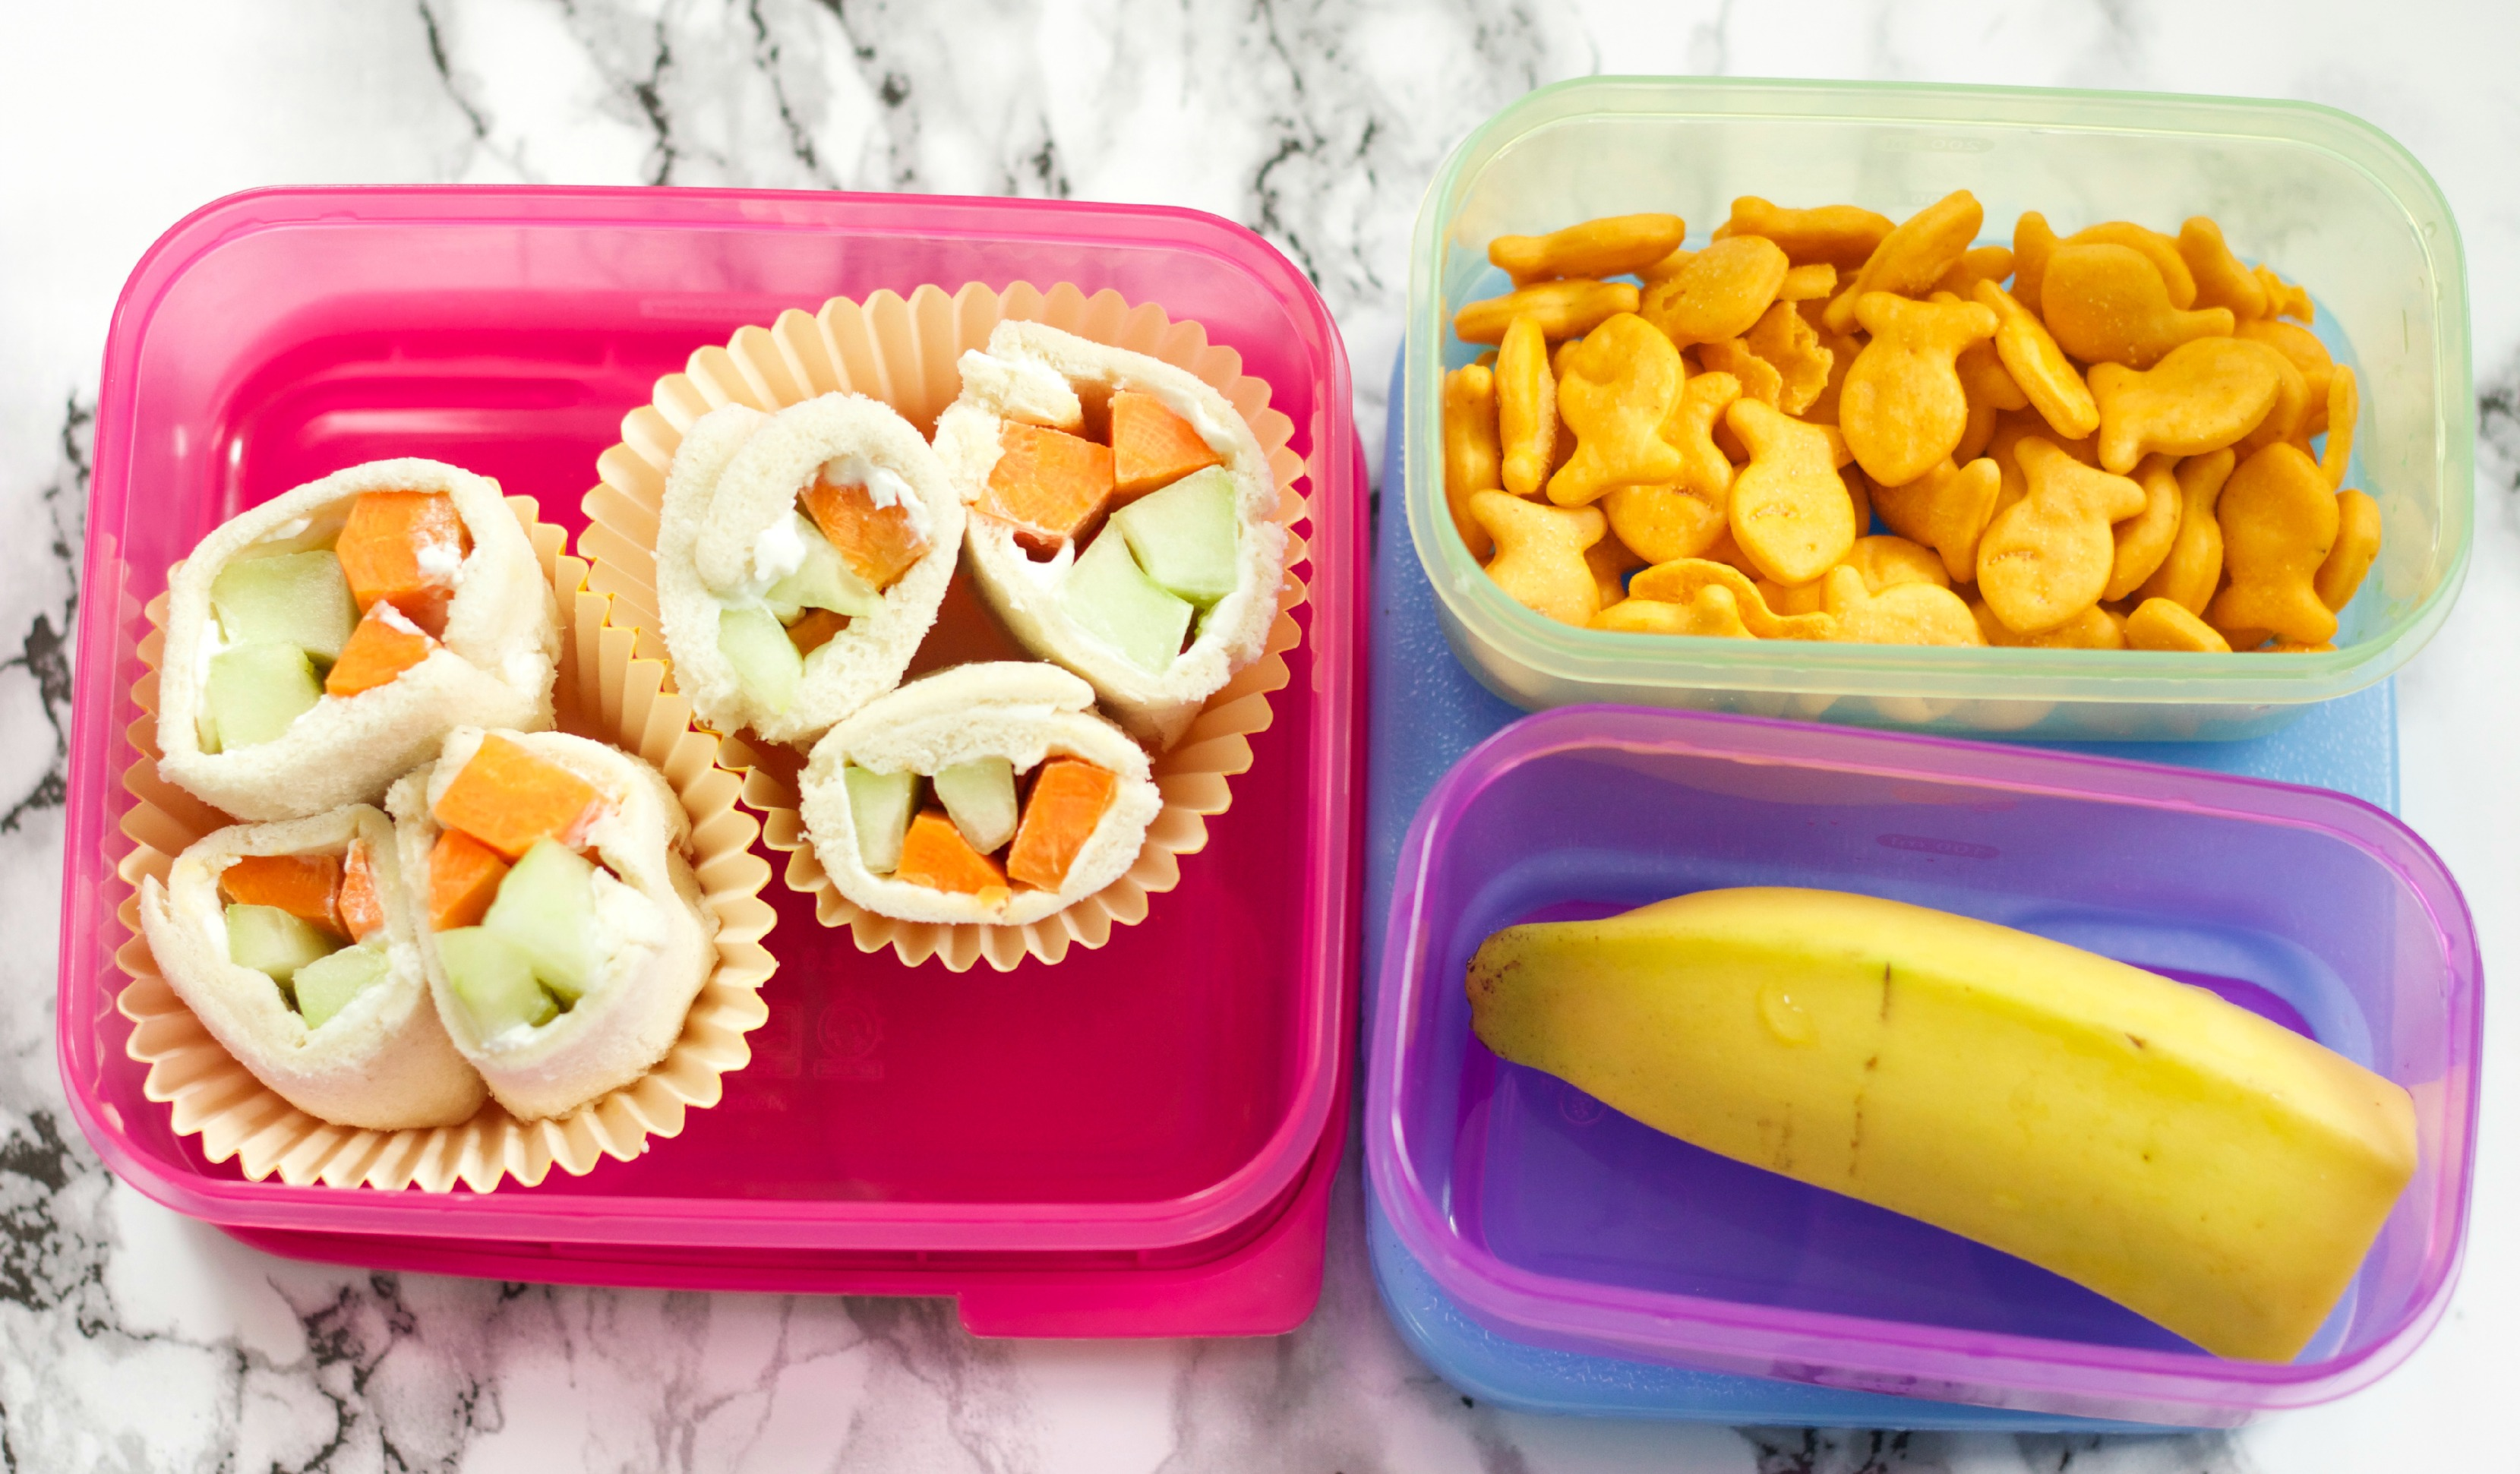 Vegetable Sushi, with gold fish and banana